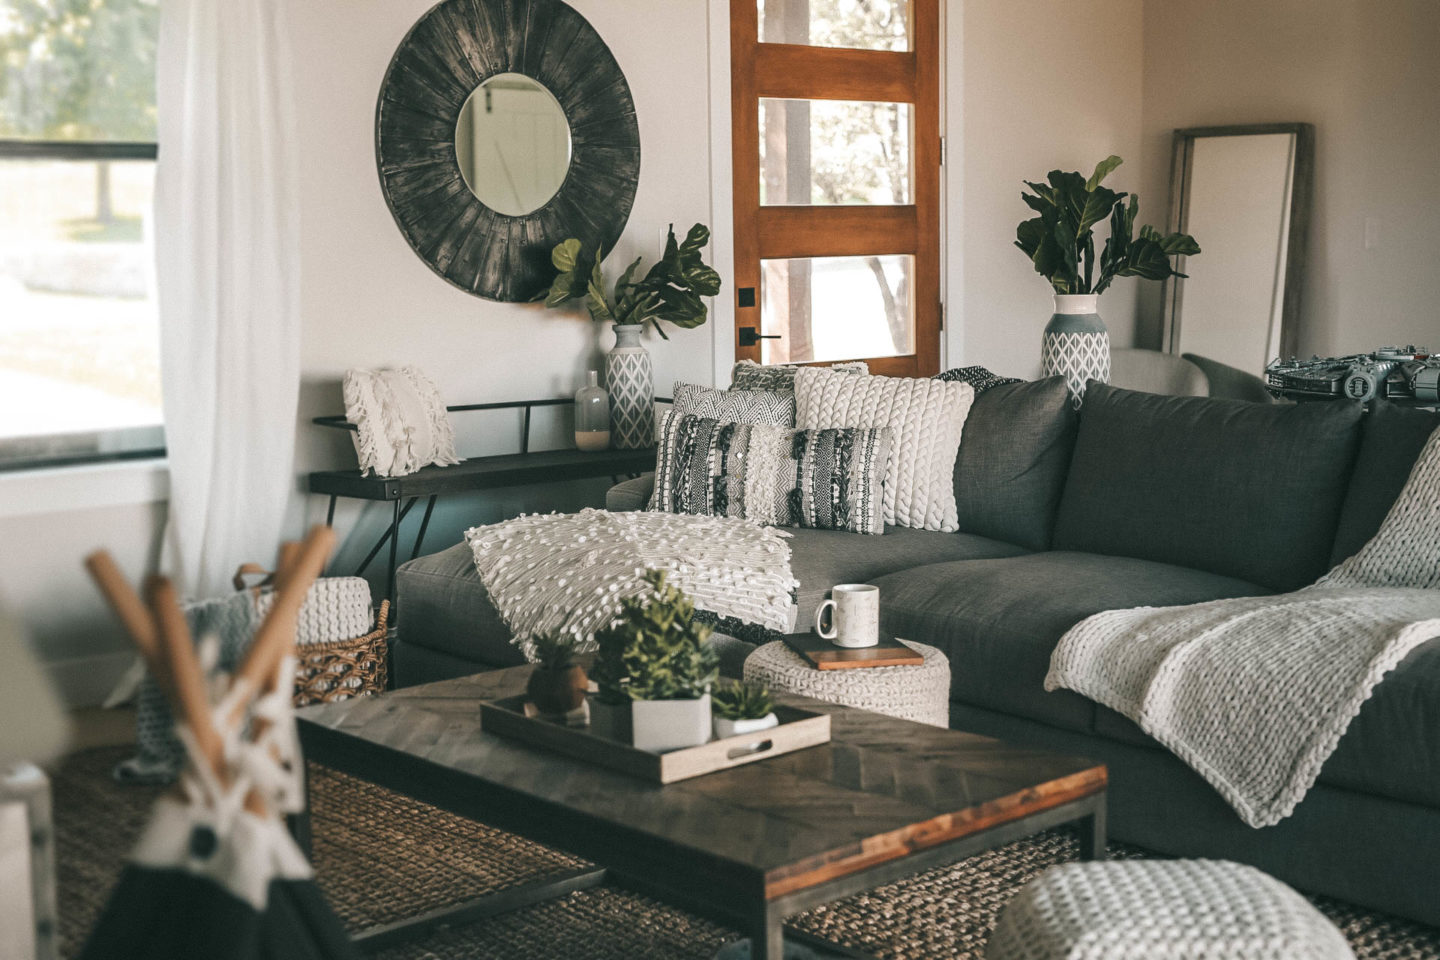 How to create a cozy living room - Dressed to Kill